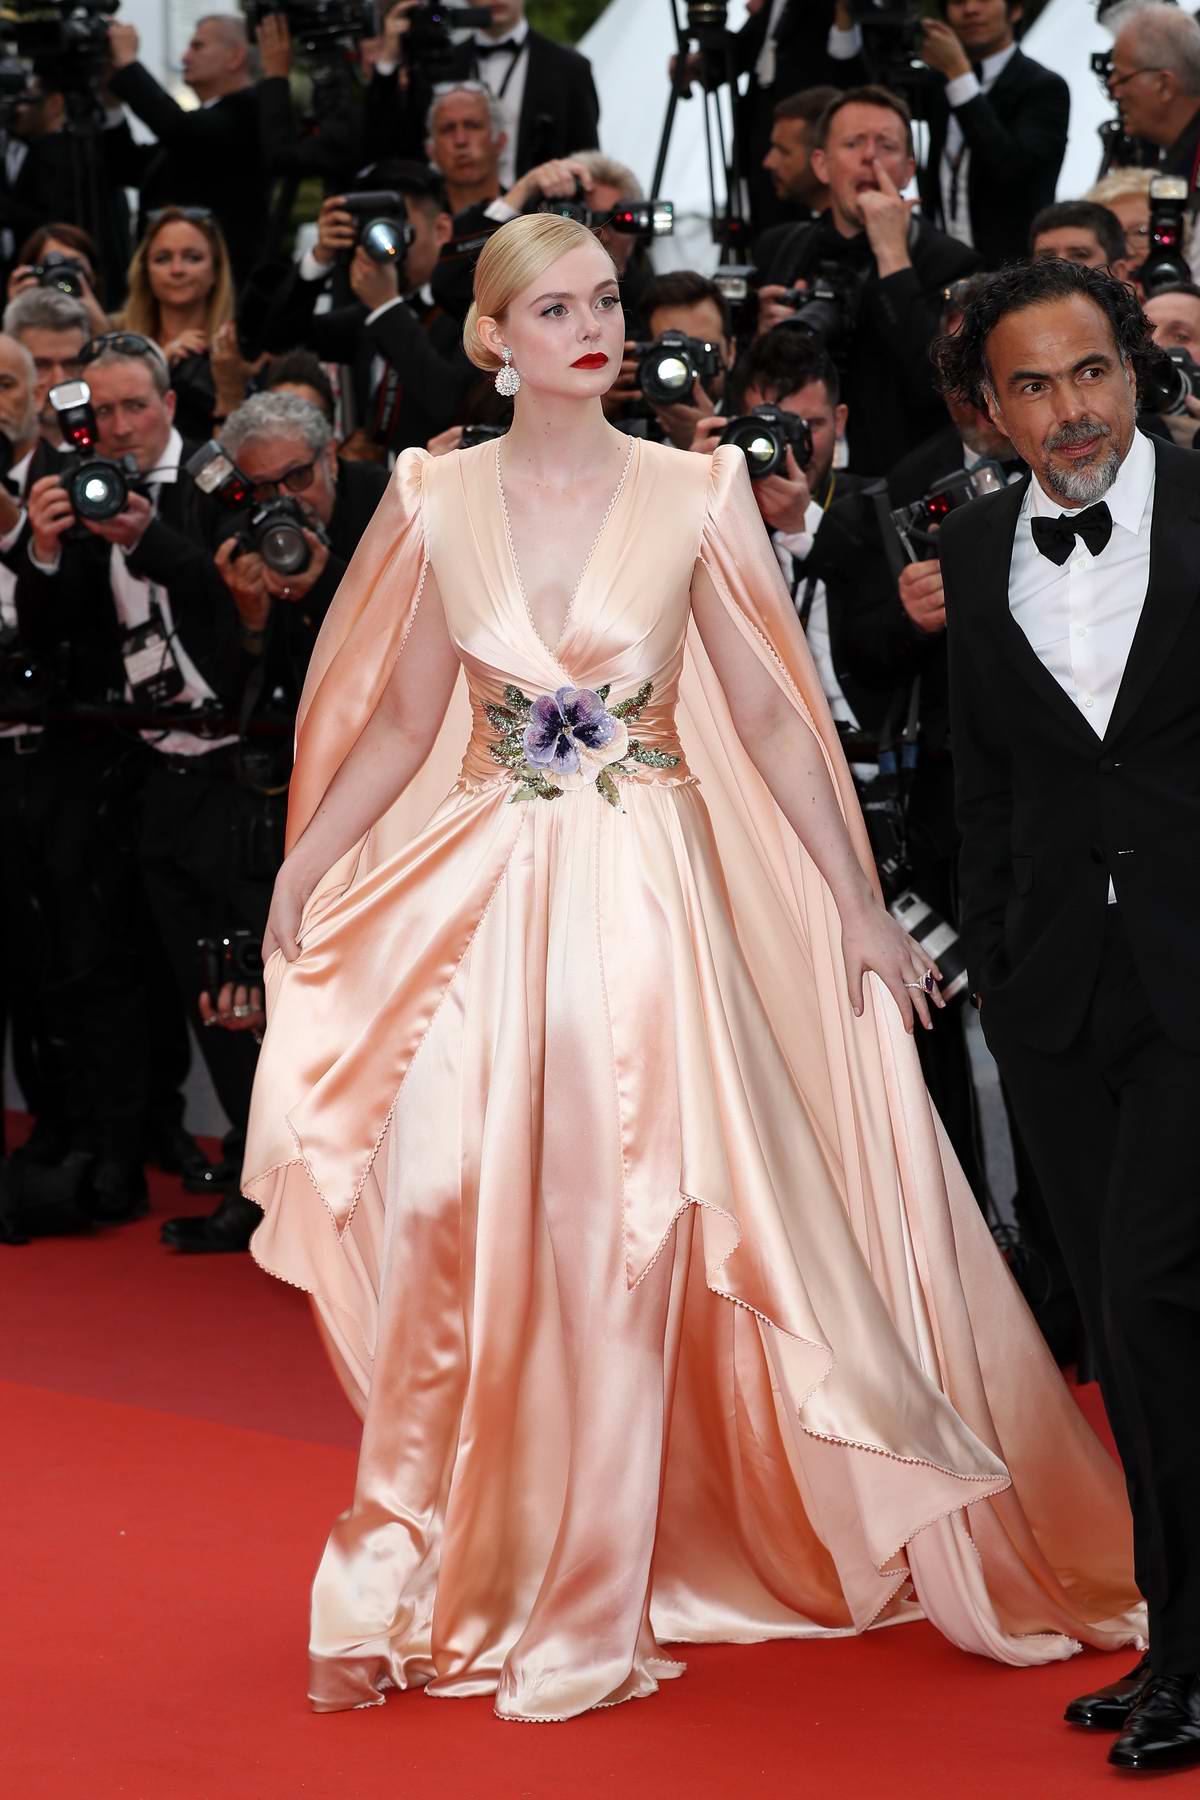 elle-fanning-attends-the-dead-dont-die-and-the-opening-ceremony-during-the-72nd-annual-cannes-film-festival-in-cannes-france-140519_5.jpg